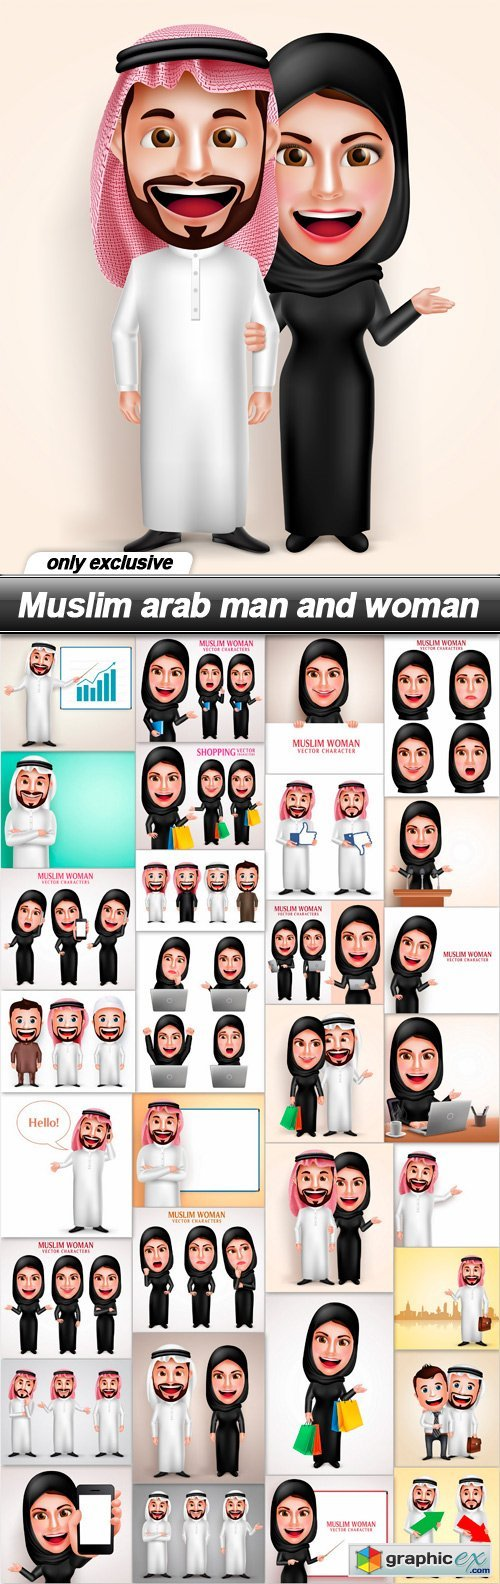 Muslim arab man and woman - 31 EPS